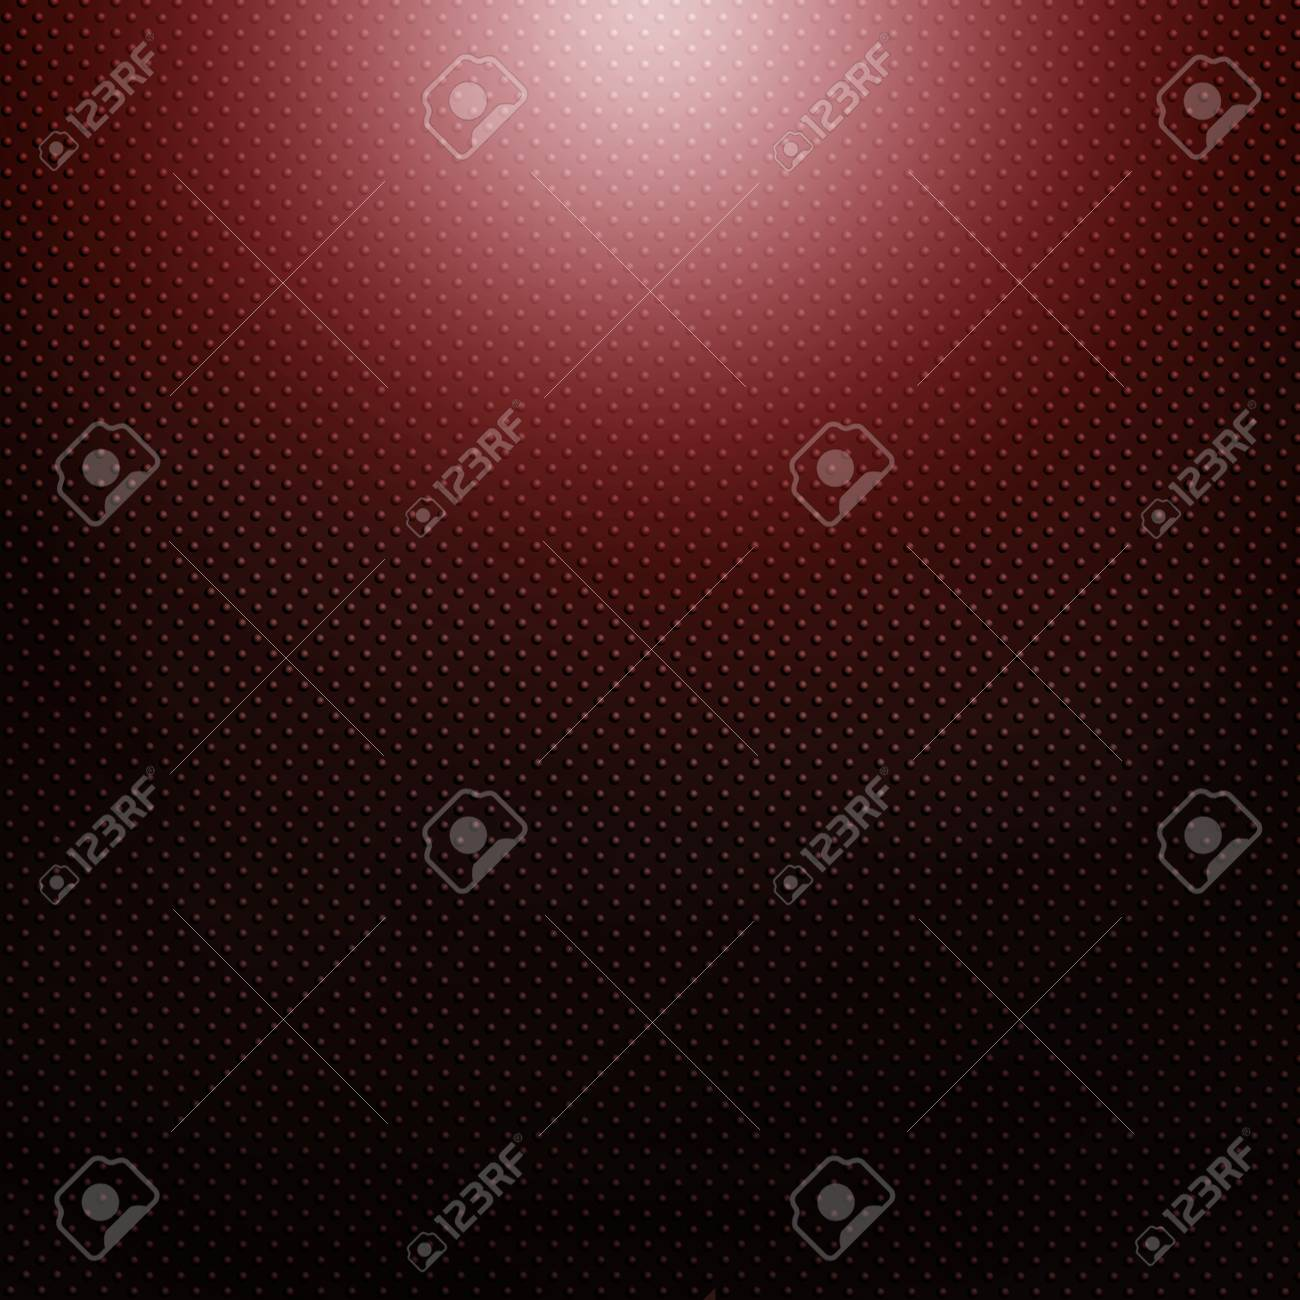 illustrate of grill texture background Stock Photo - 10520745